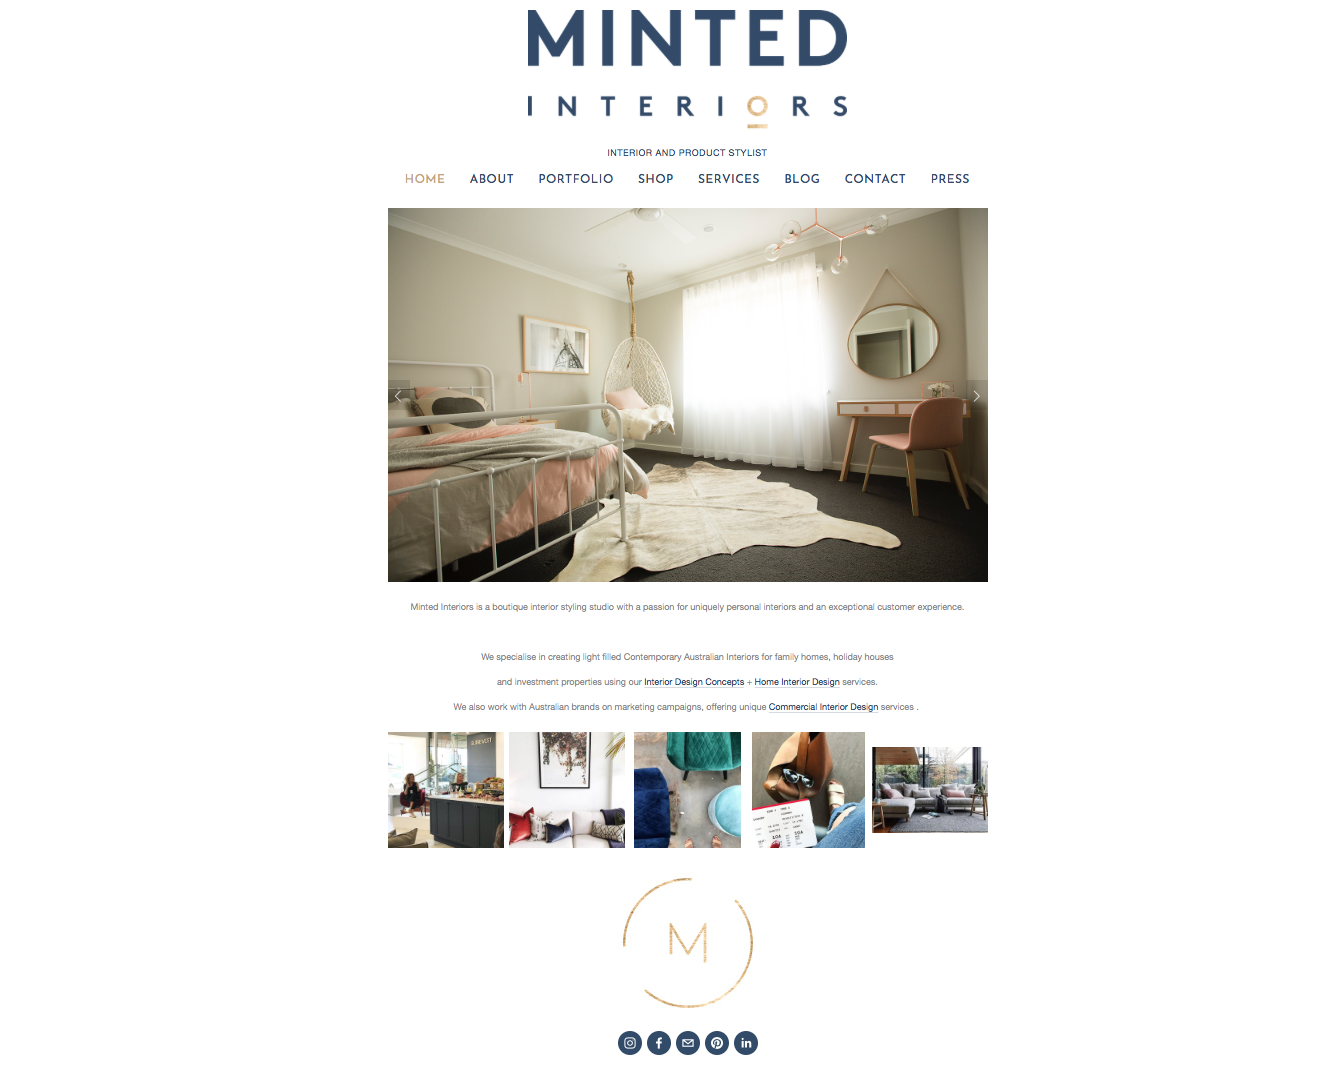 Minted Interior's brand refresh on the website